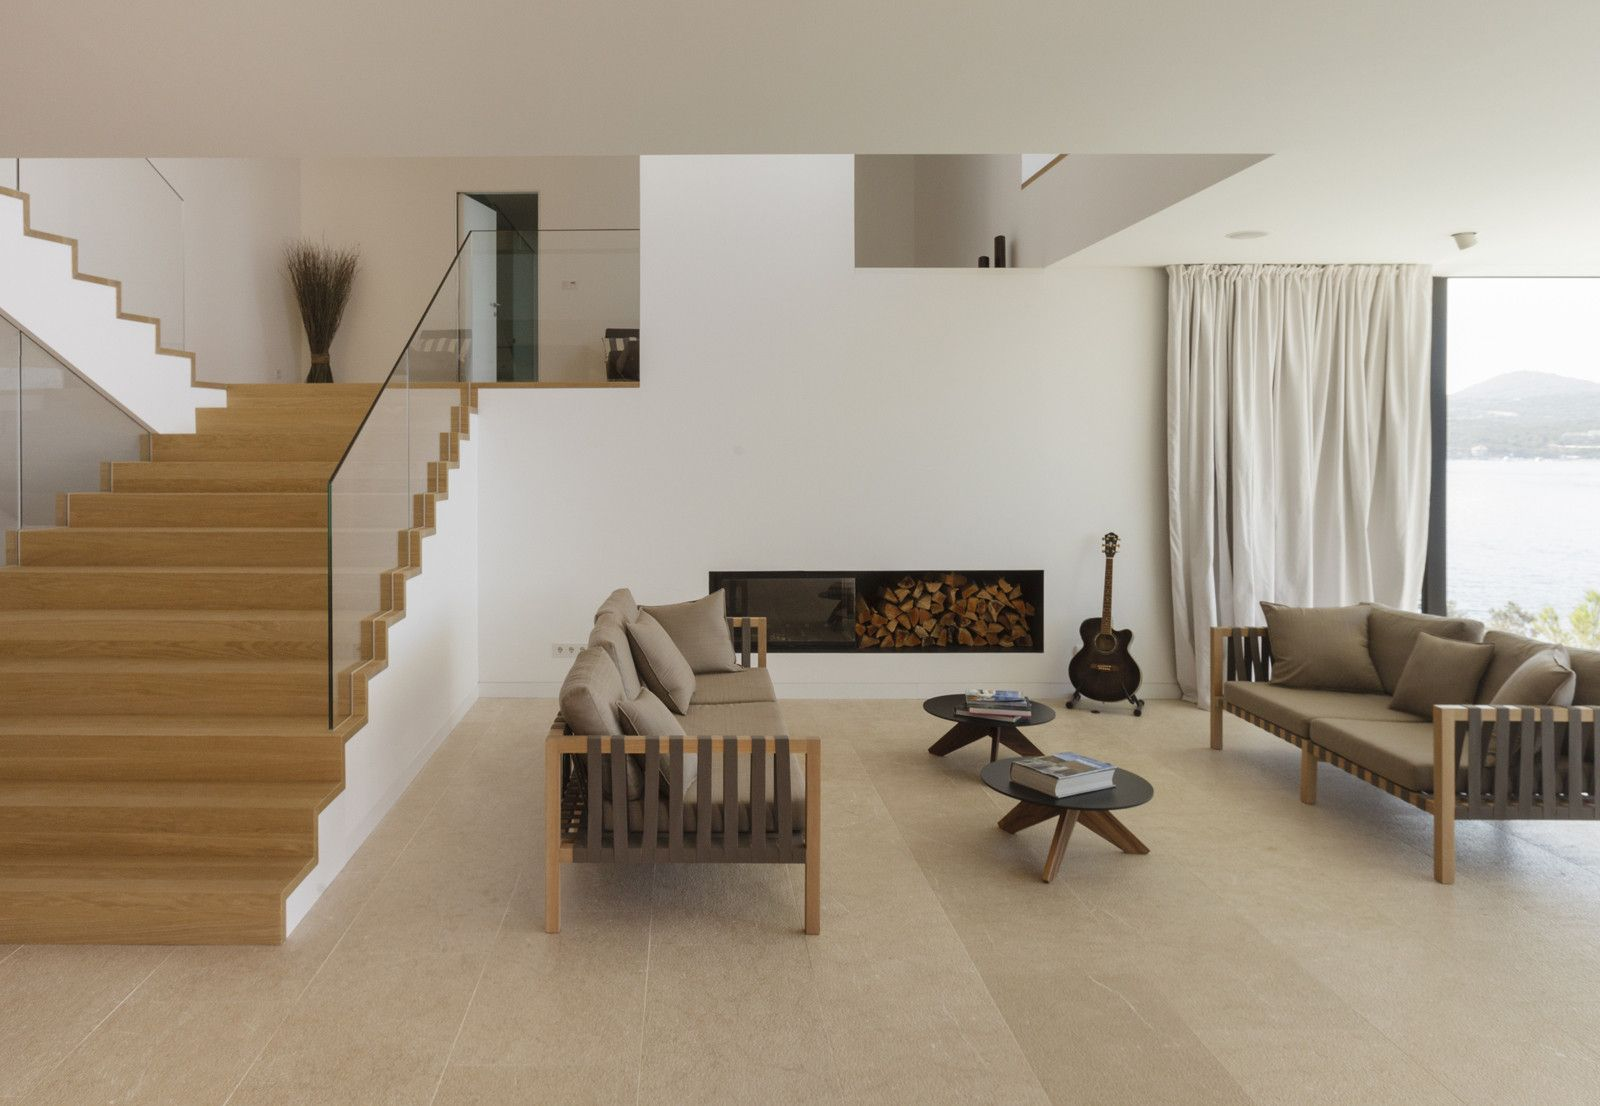 Gallery - House V2 / 3LHD - 14